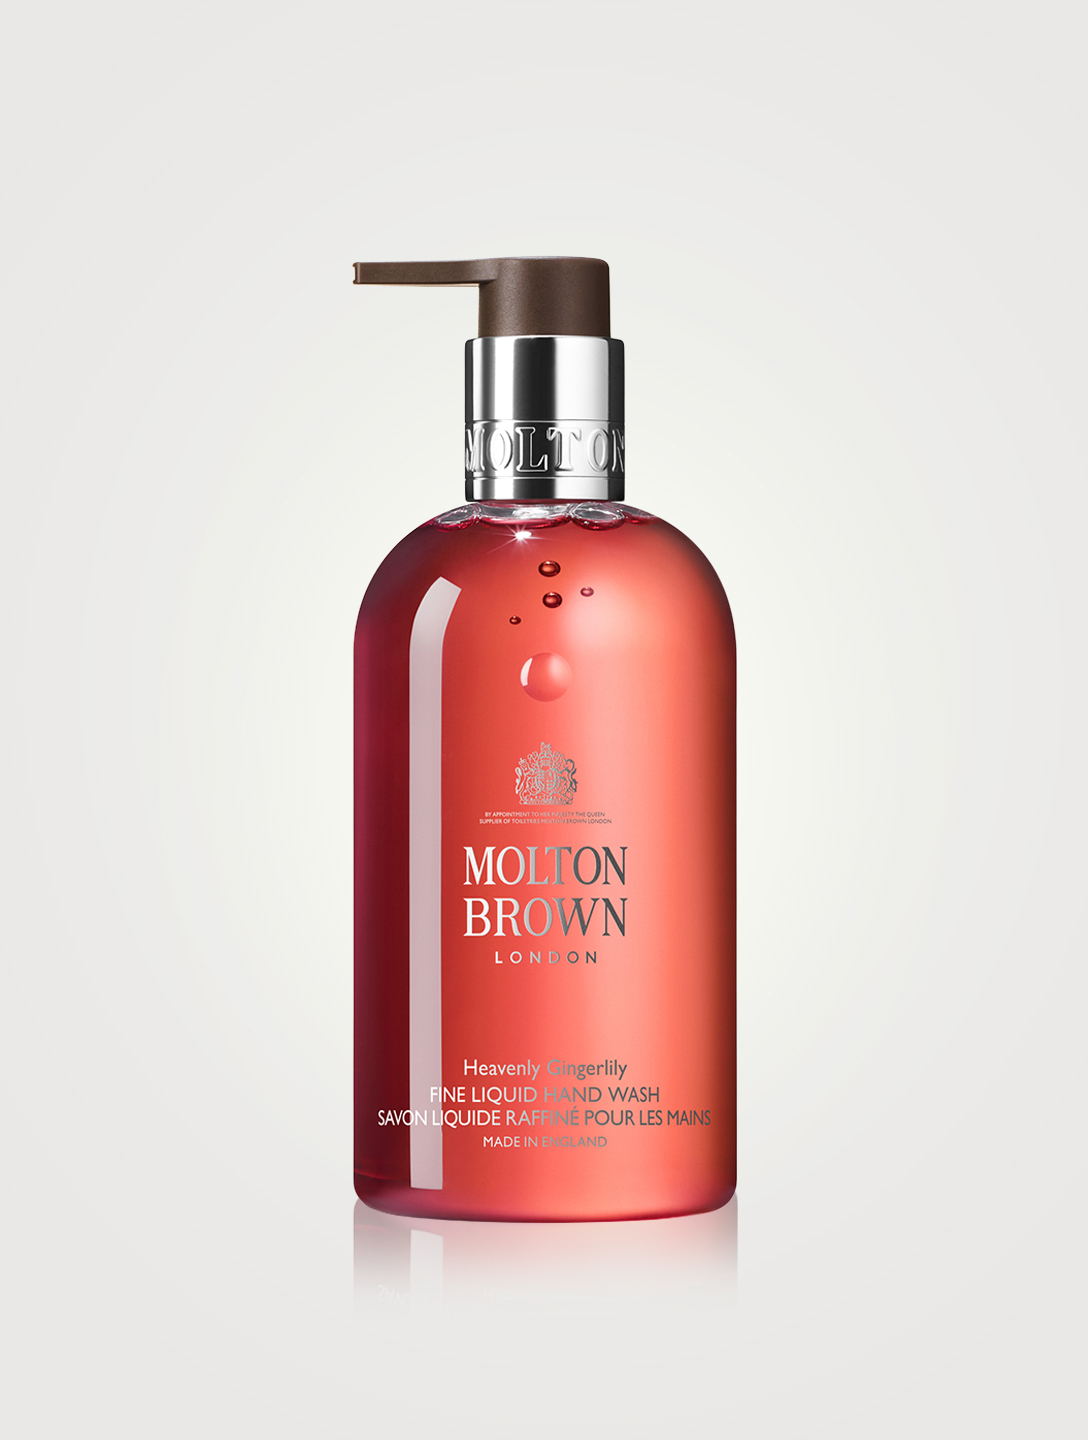 MOLTON BROWN Heavenly Gingerlily Fine Liquid Hand Wash Beauty